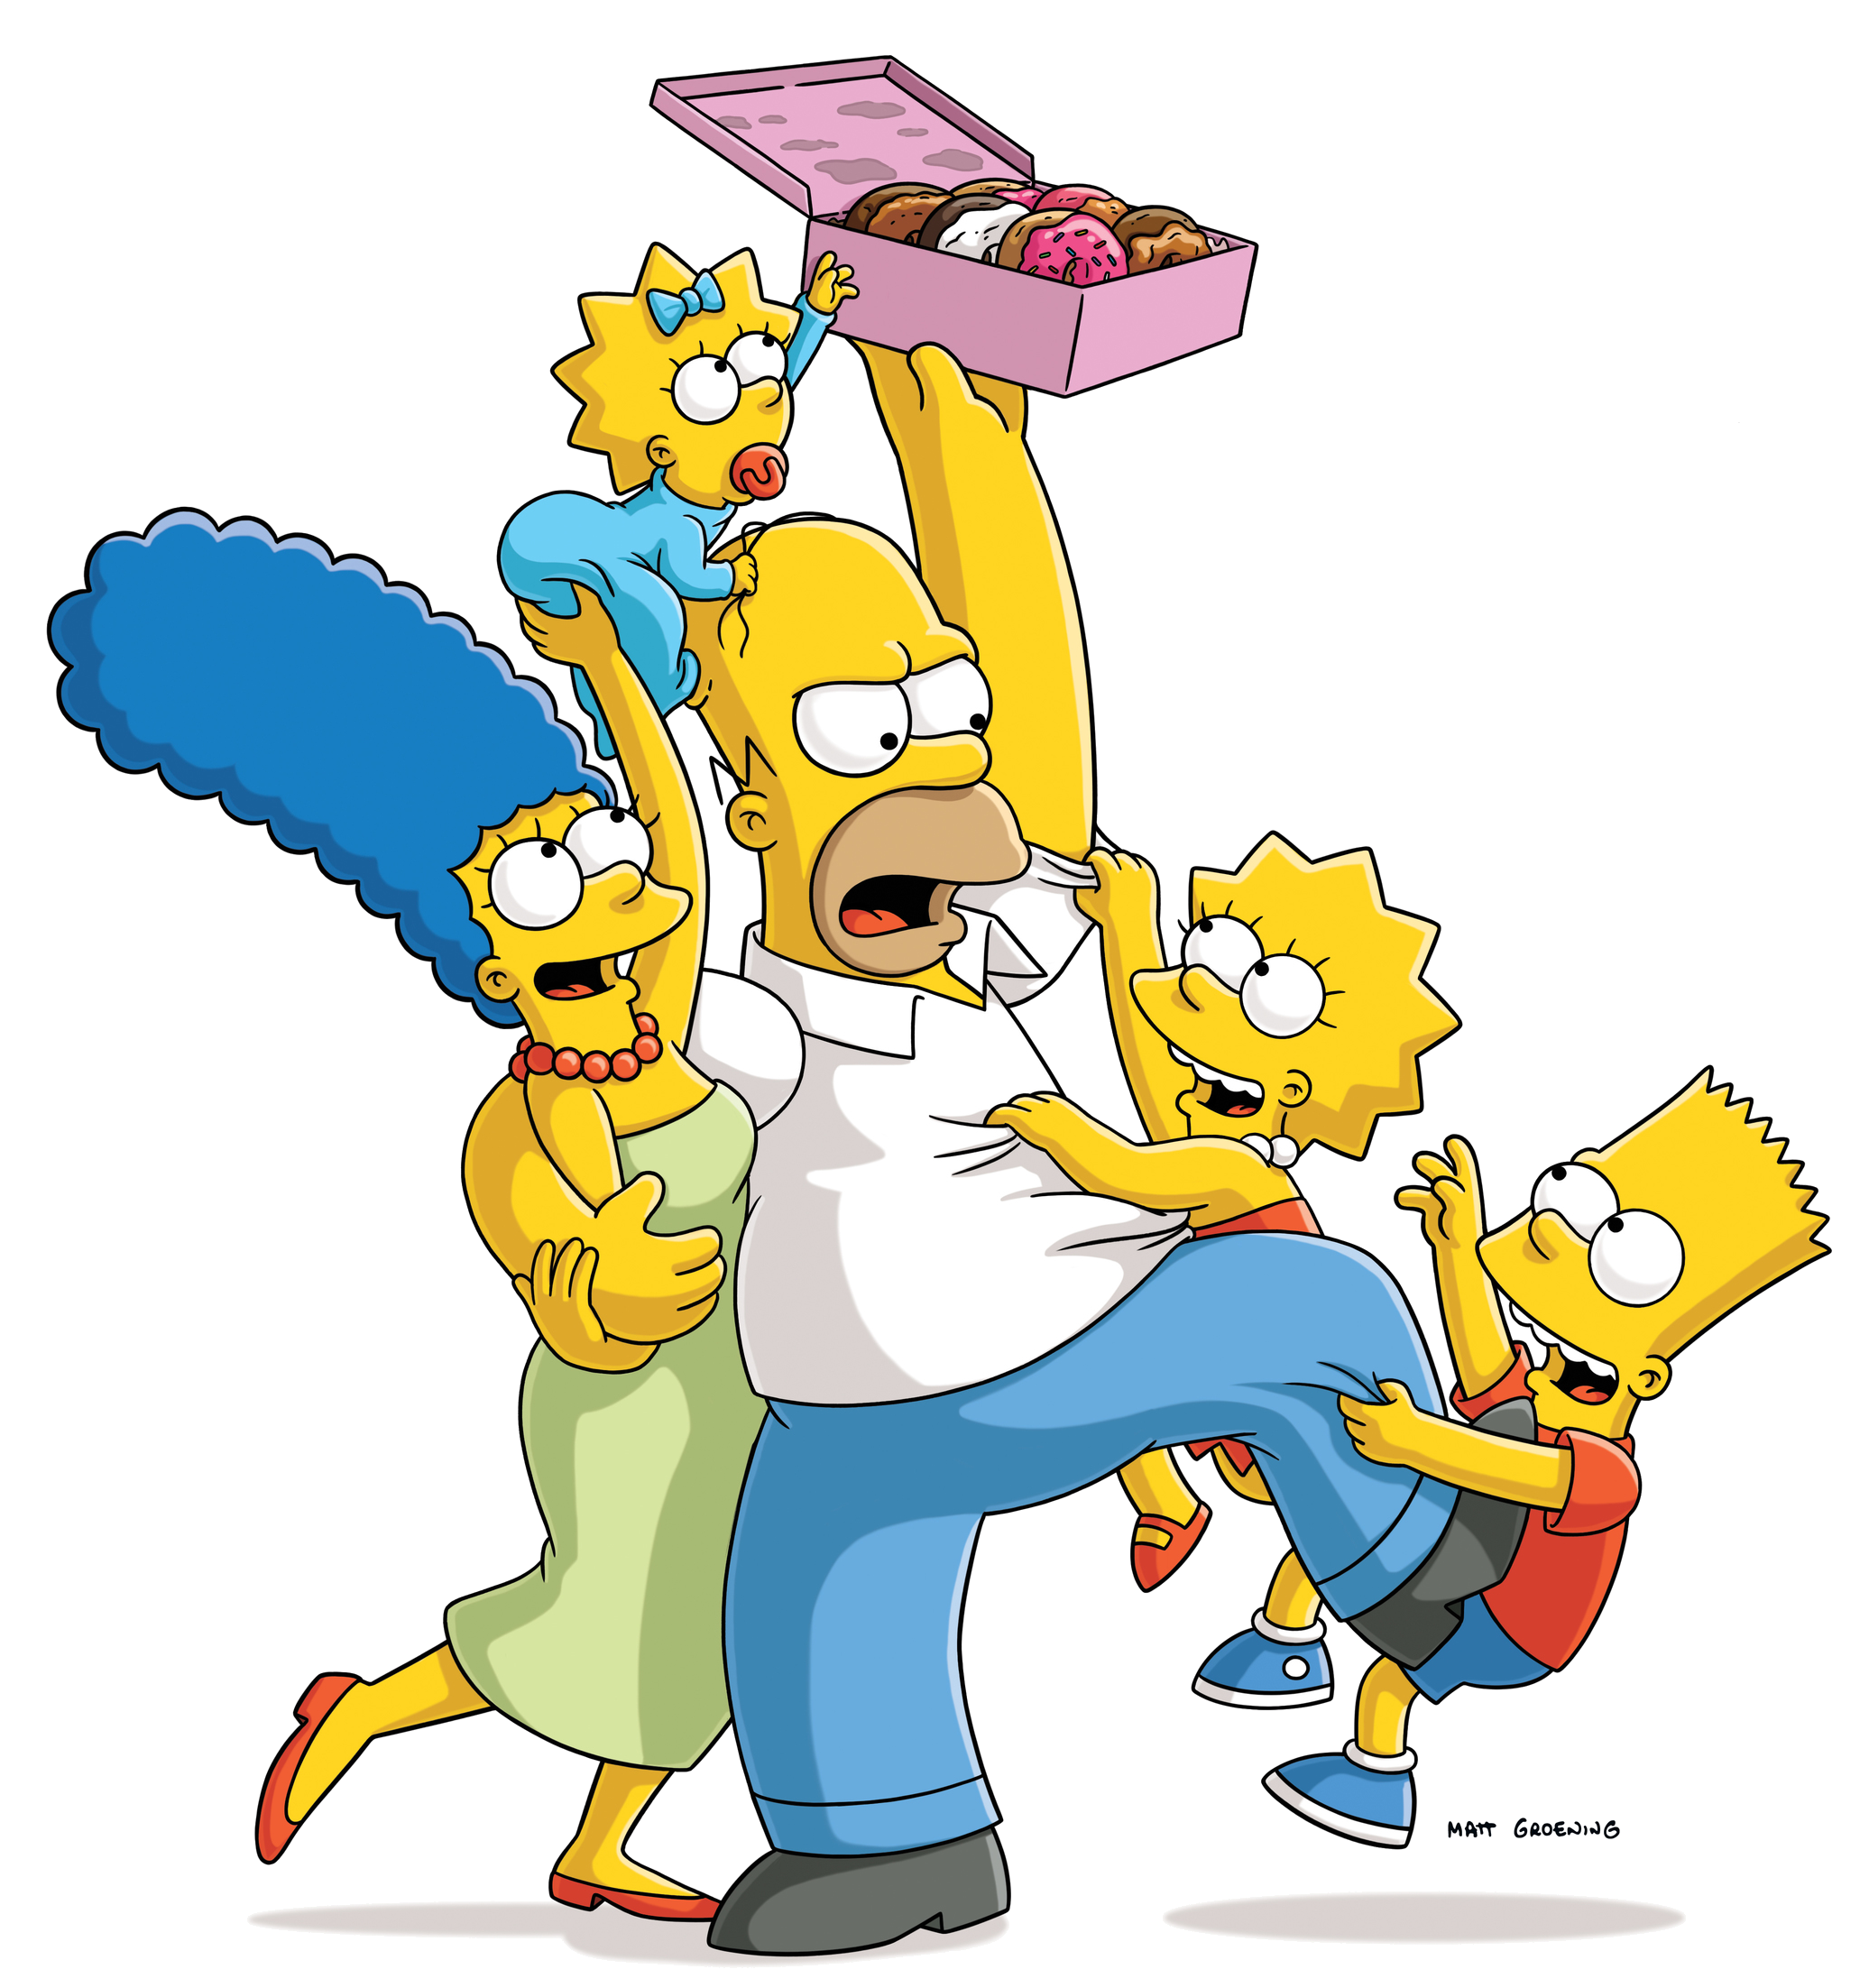 Homer and lisa face halloween home invaders in october - Simpsons info ...